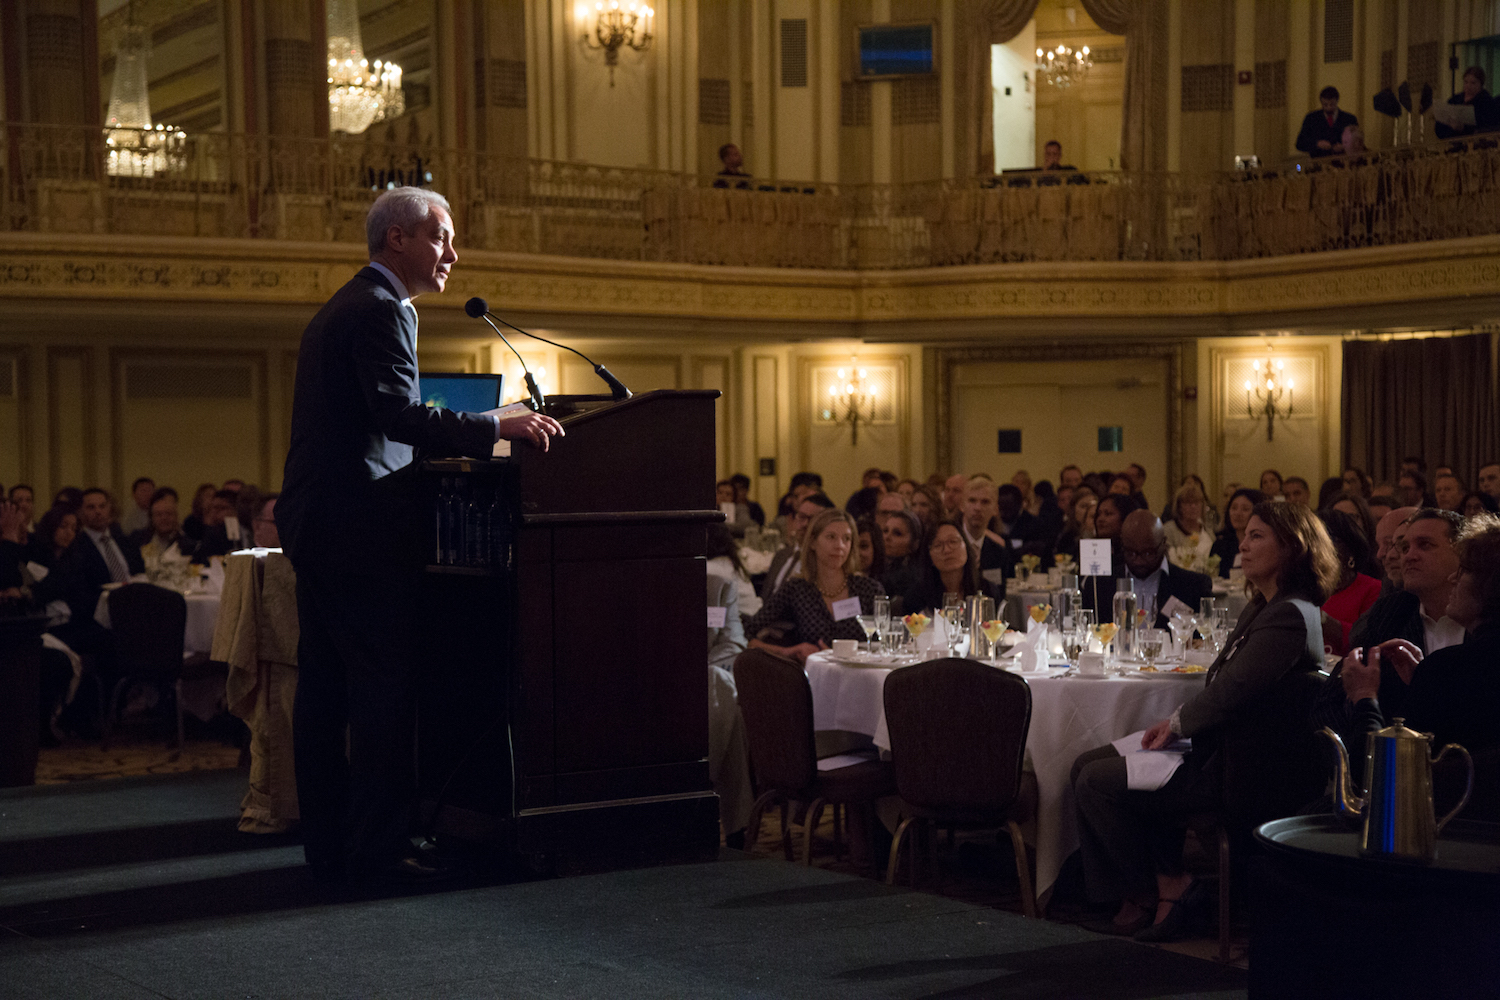 - Chicago business, community and workforce development leaders joined honorary co-chairs Mayor Rahm Emanuel and Penny Pritzker to celebrate Skills for Chicagoland's Future's (Skills) employer and community partners at its third annual Employment Champions Breakfast.